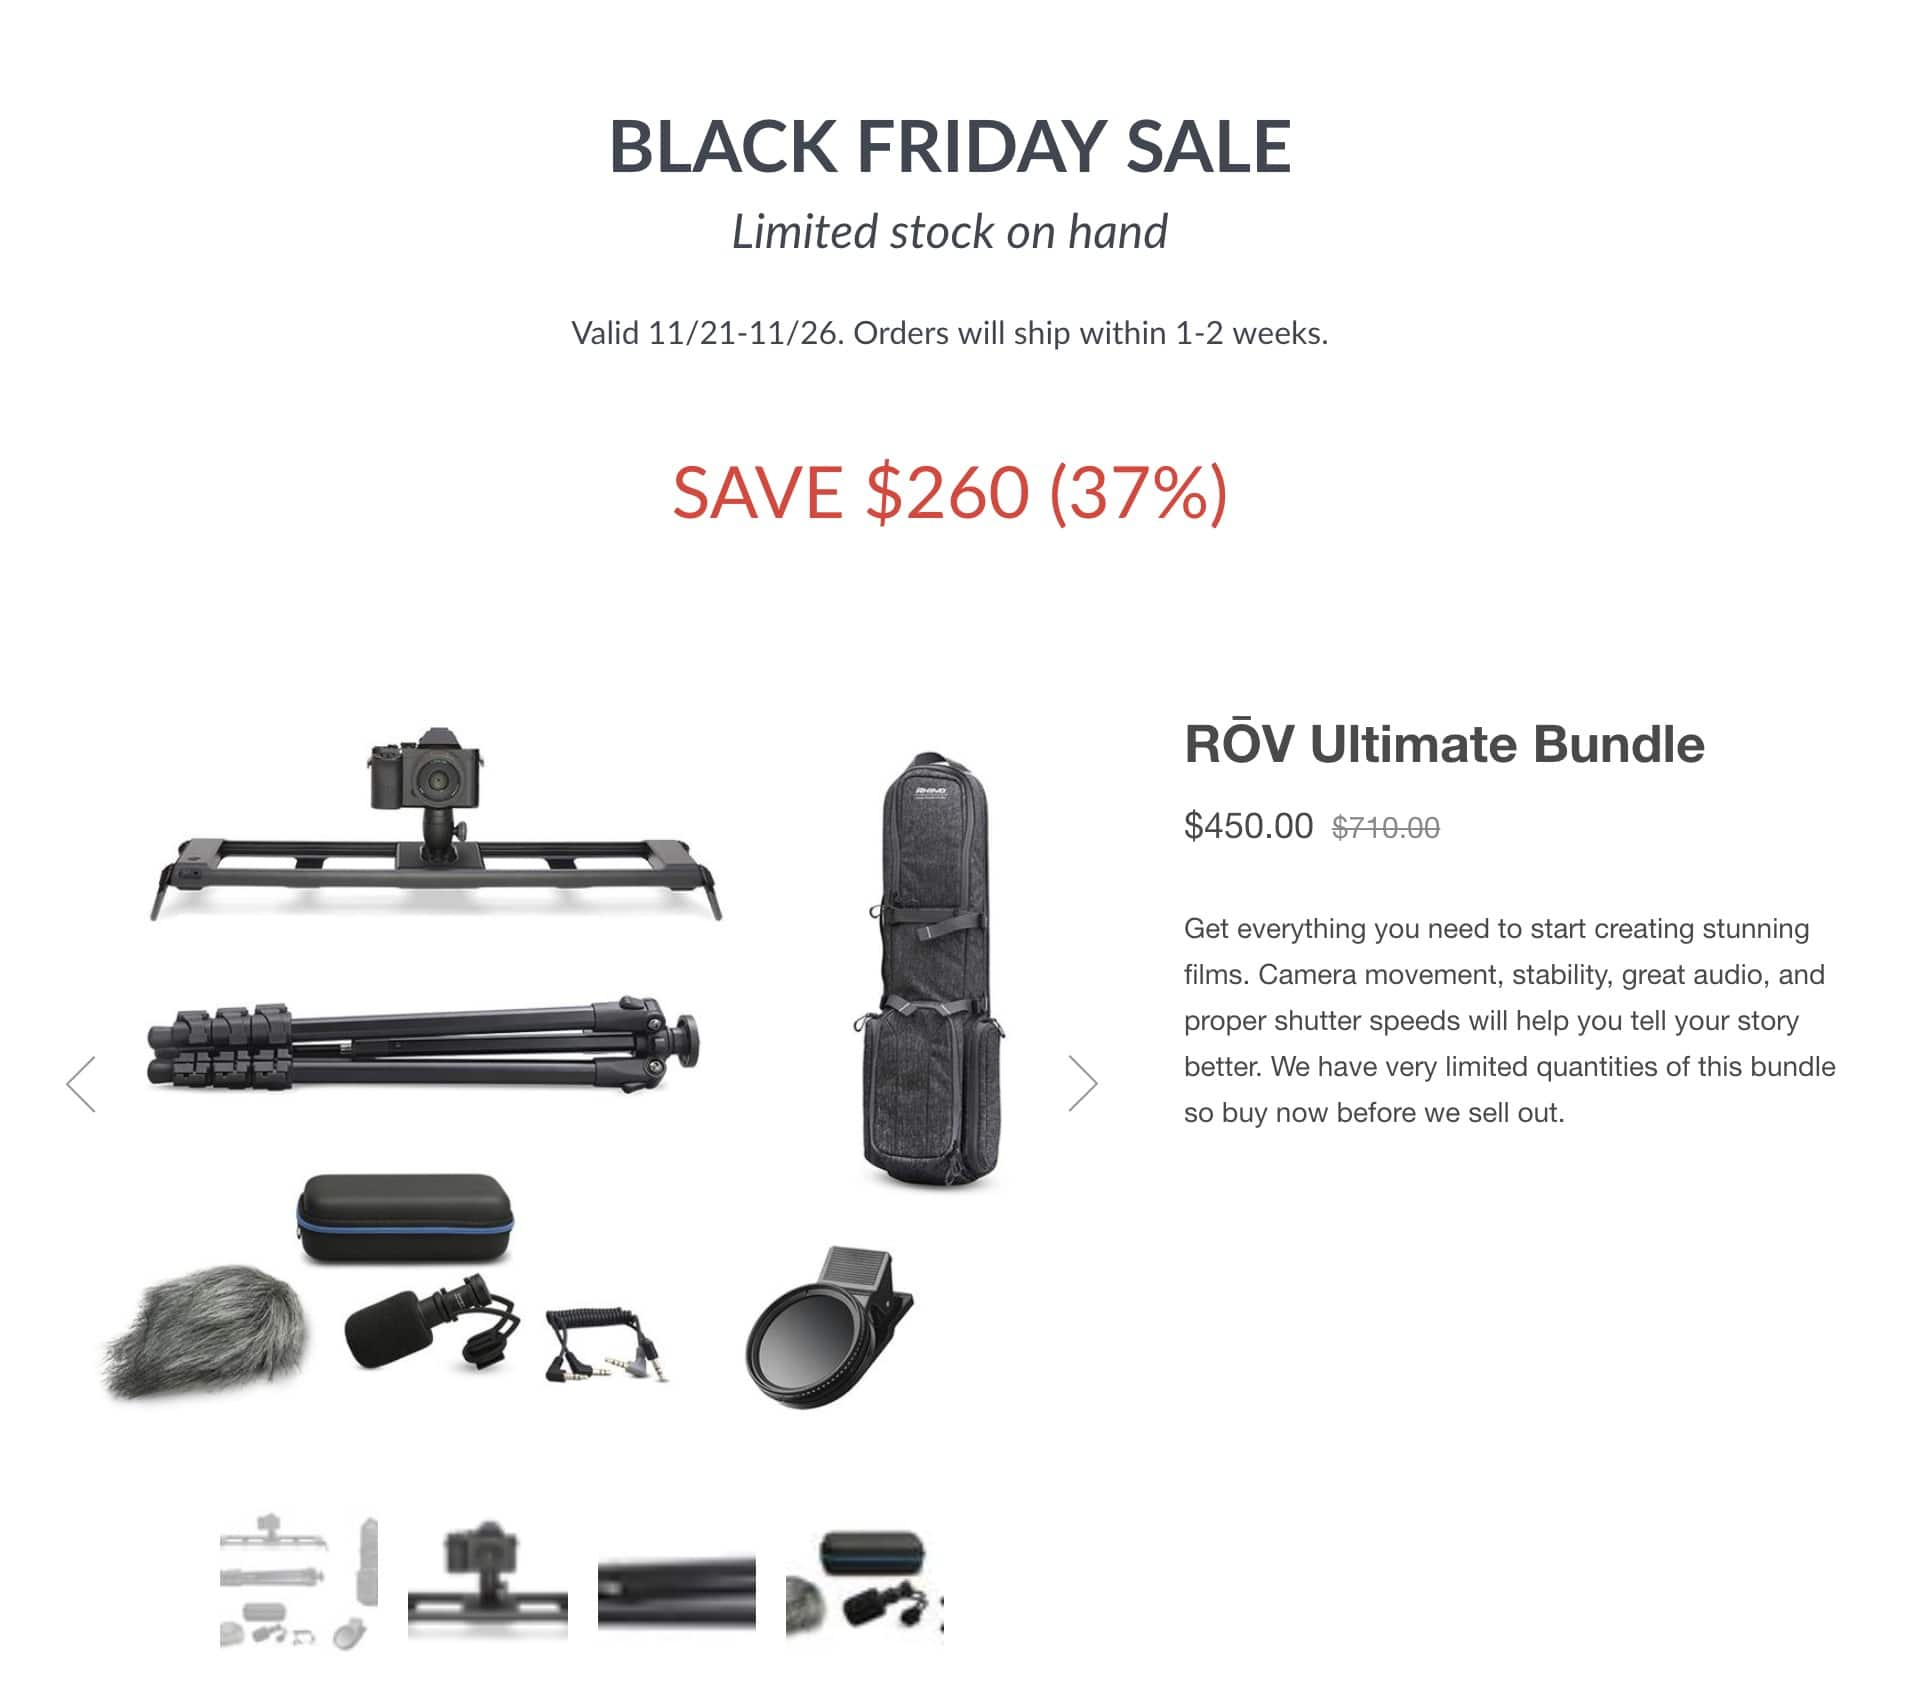 Rhino Slider ROV Ultimate Bundle 37% off $450